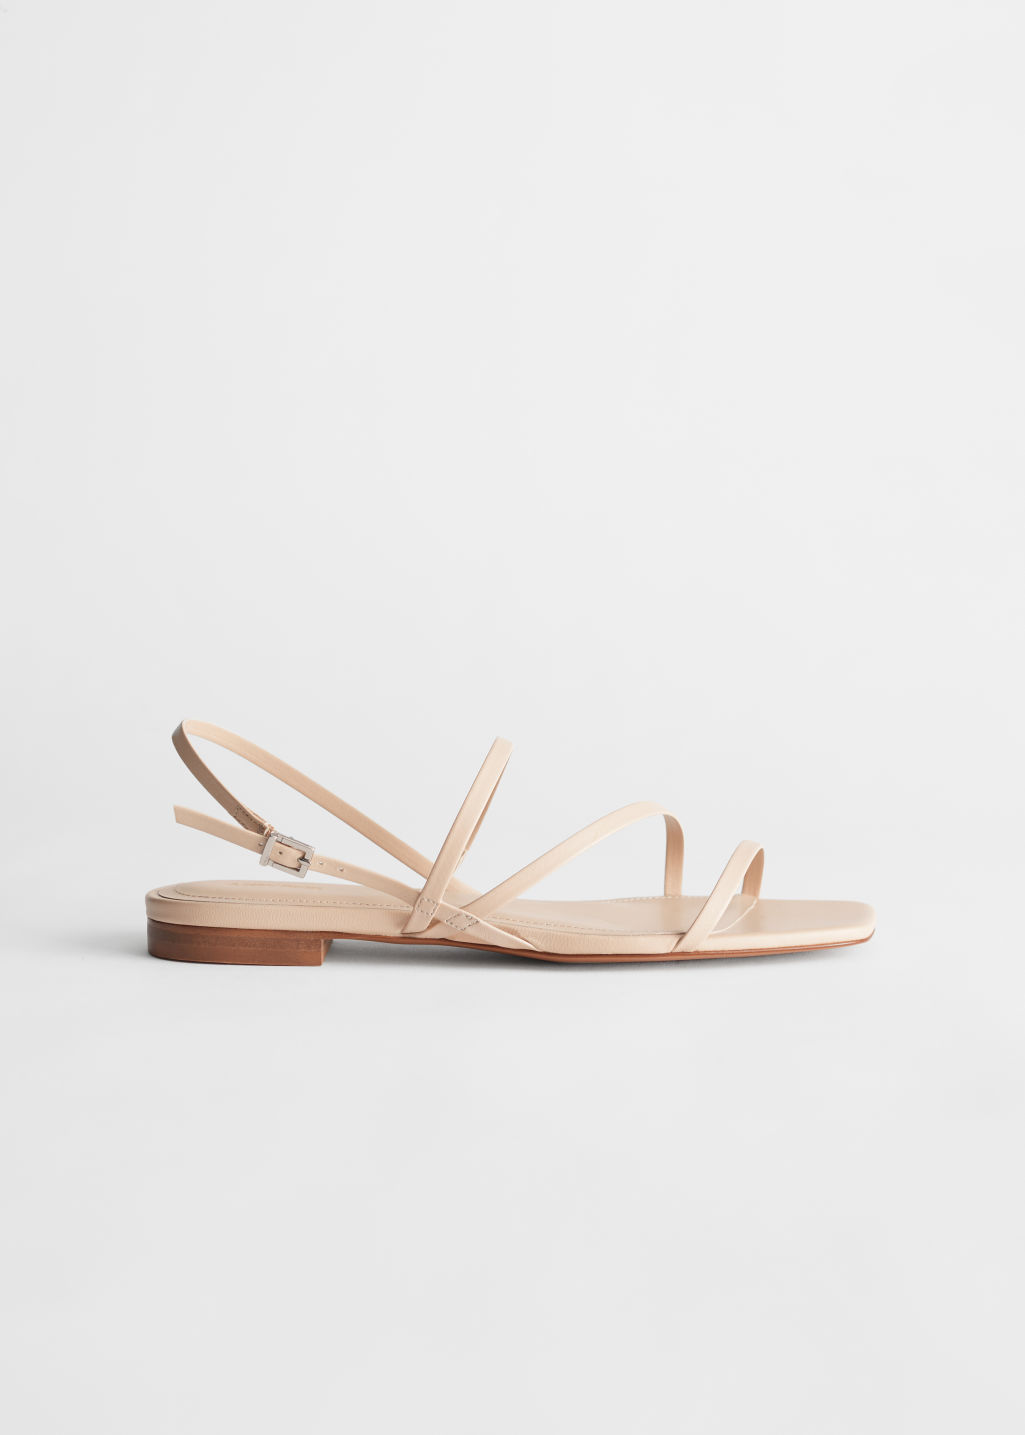 StillLife Left Image of Stories Strappy Leather Slingback Sandals in White